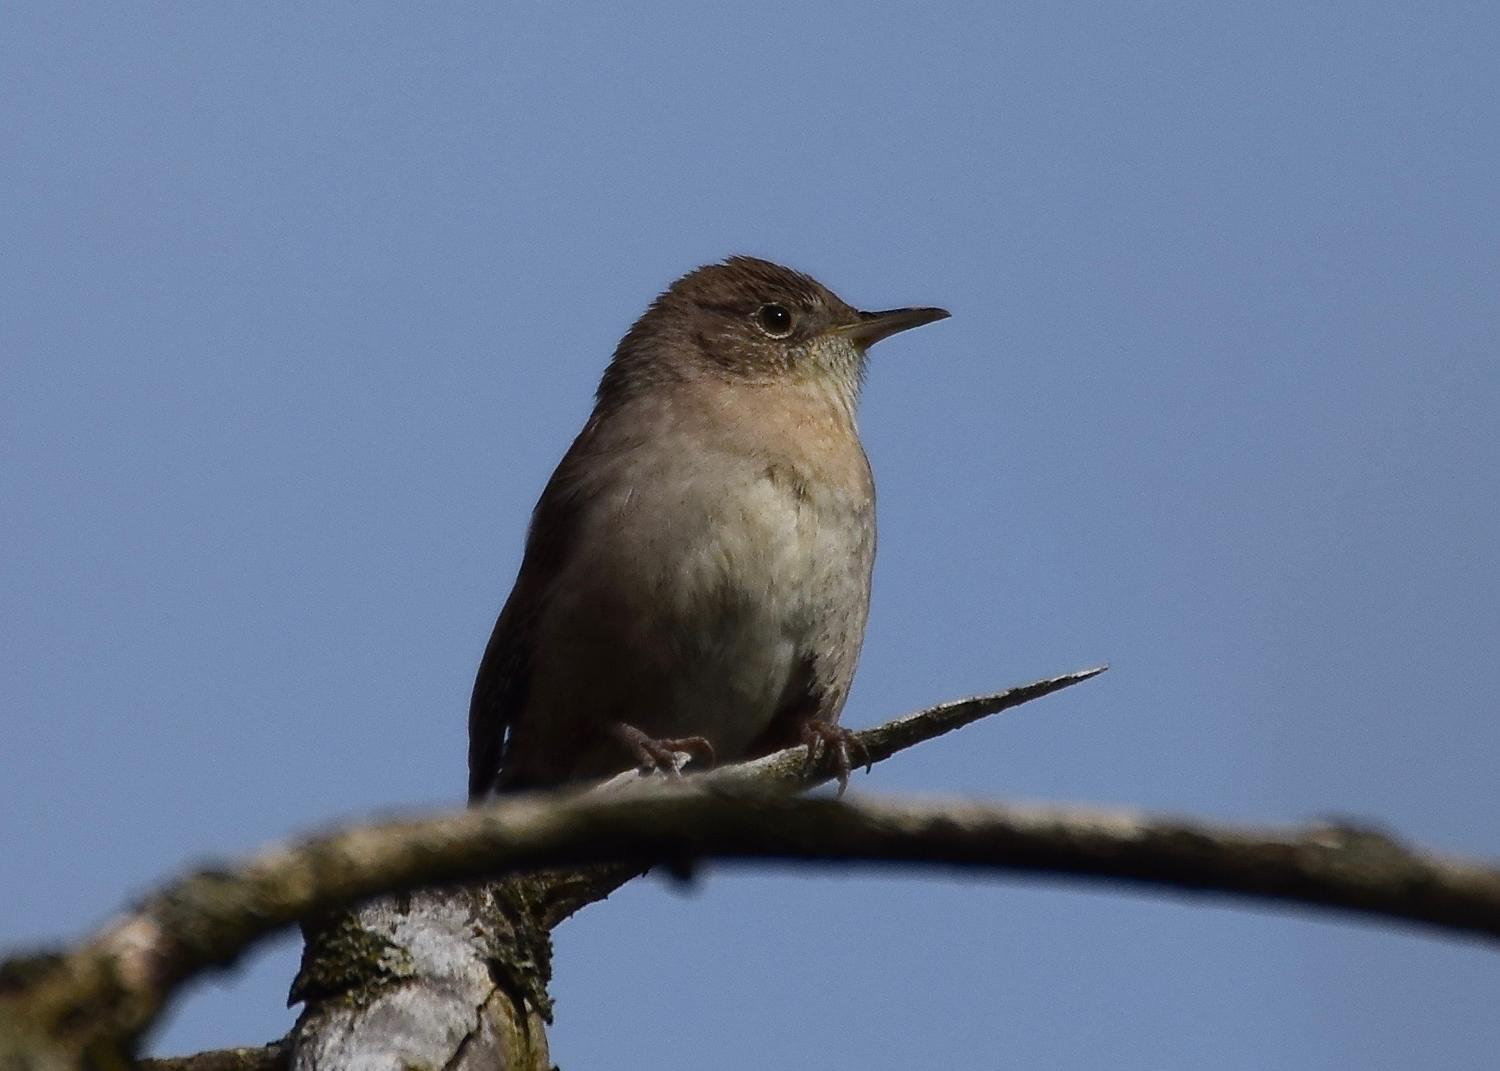 Thoughts on the House Wren